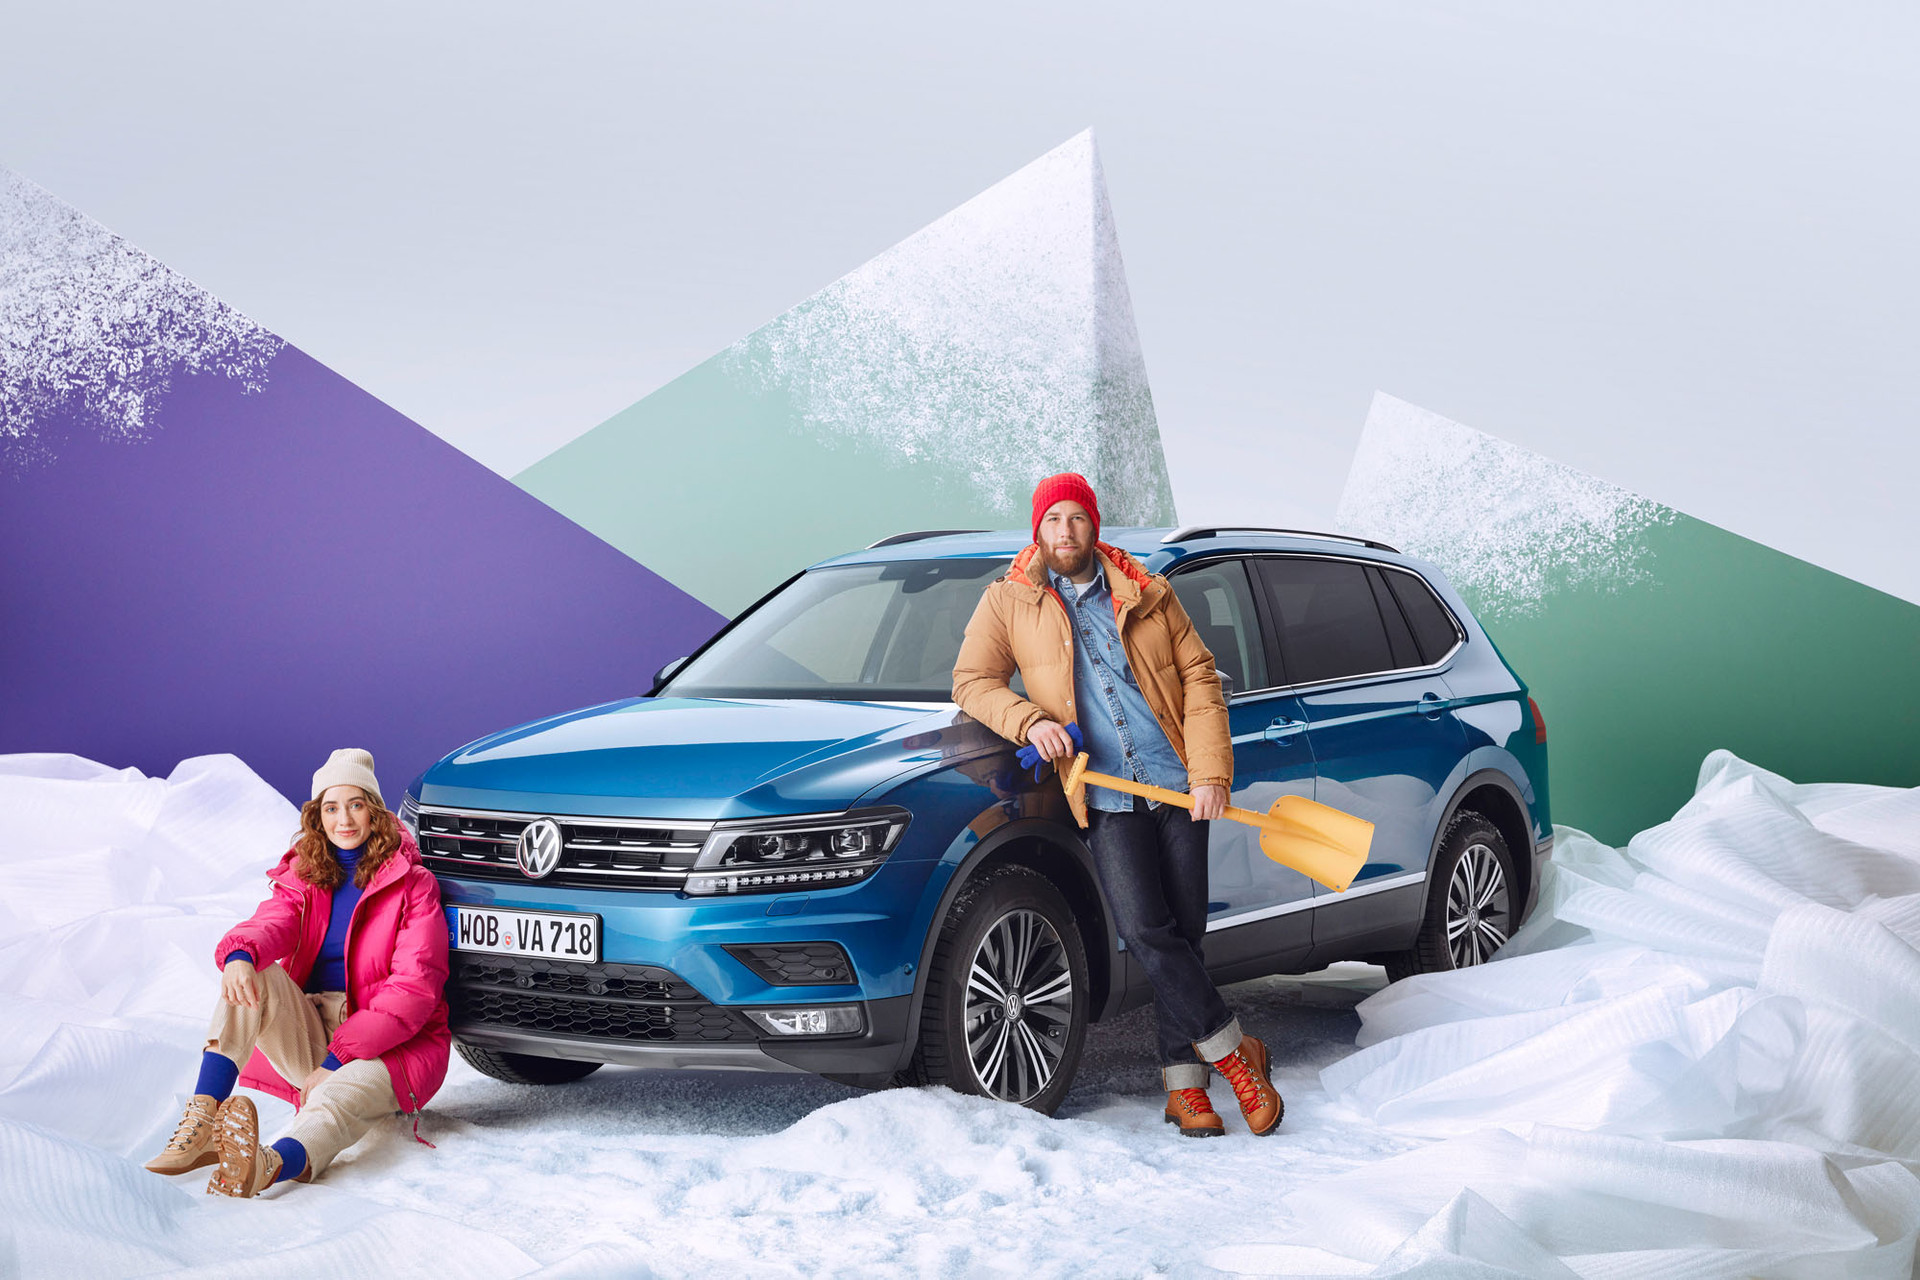 VW_RGB_Fit_fuer_den_Winter_Motiv_01_1666